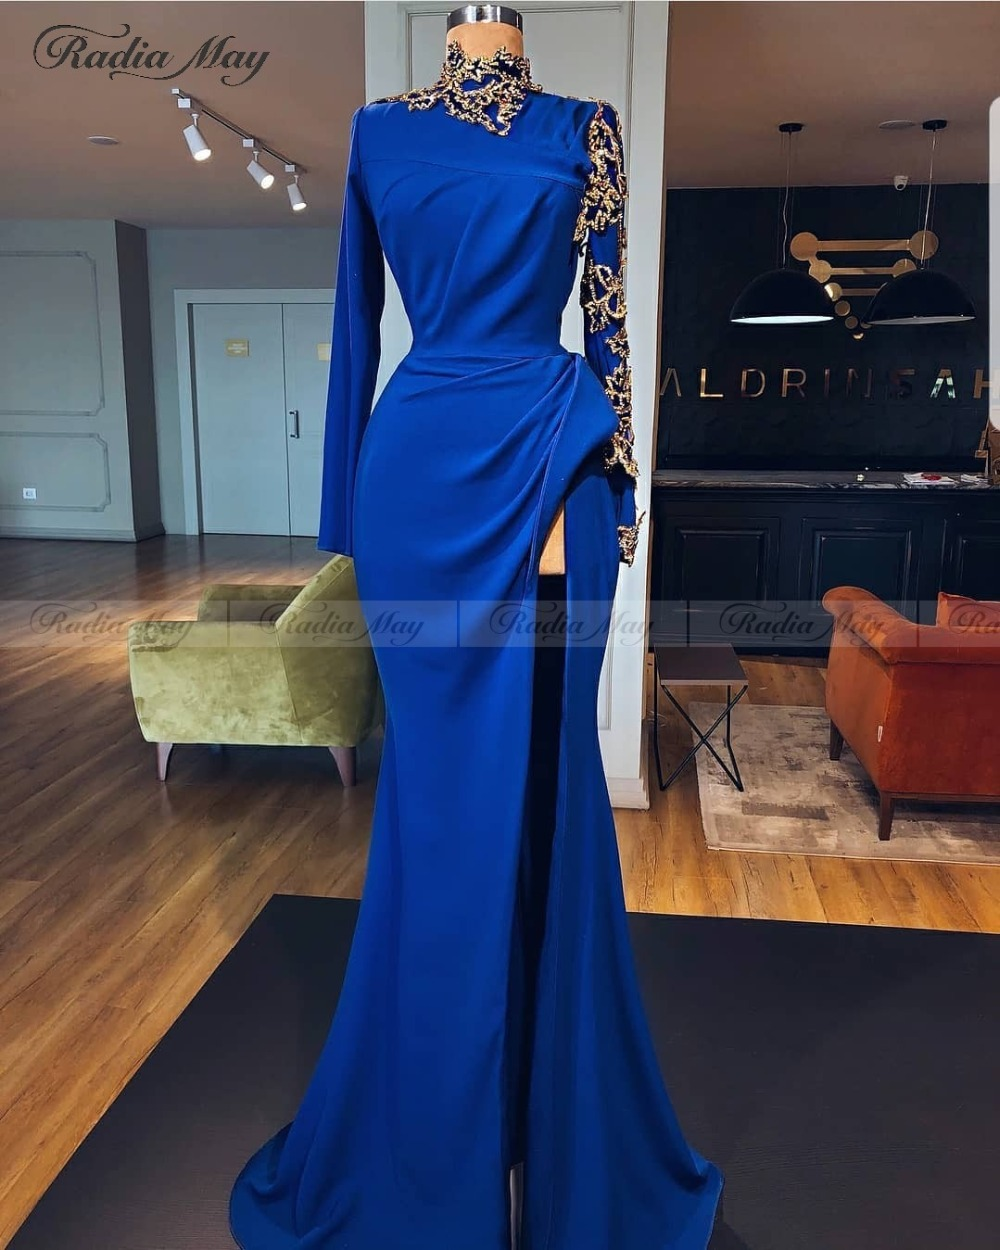 2edf5c27ac83 Elegant Women Long Sleeves Royal Blue Evening Dress Mermaid Gold ...